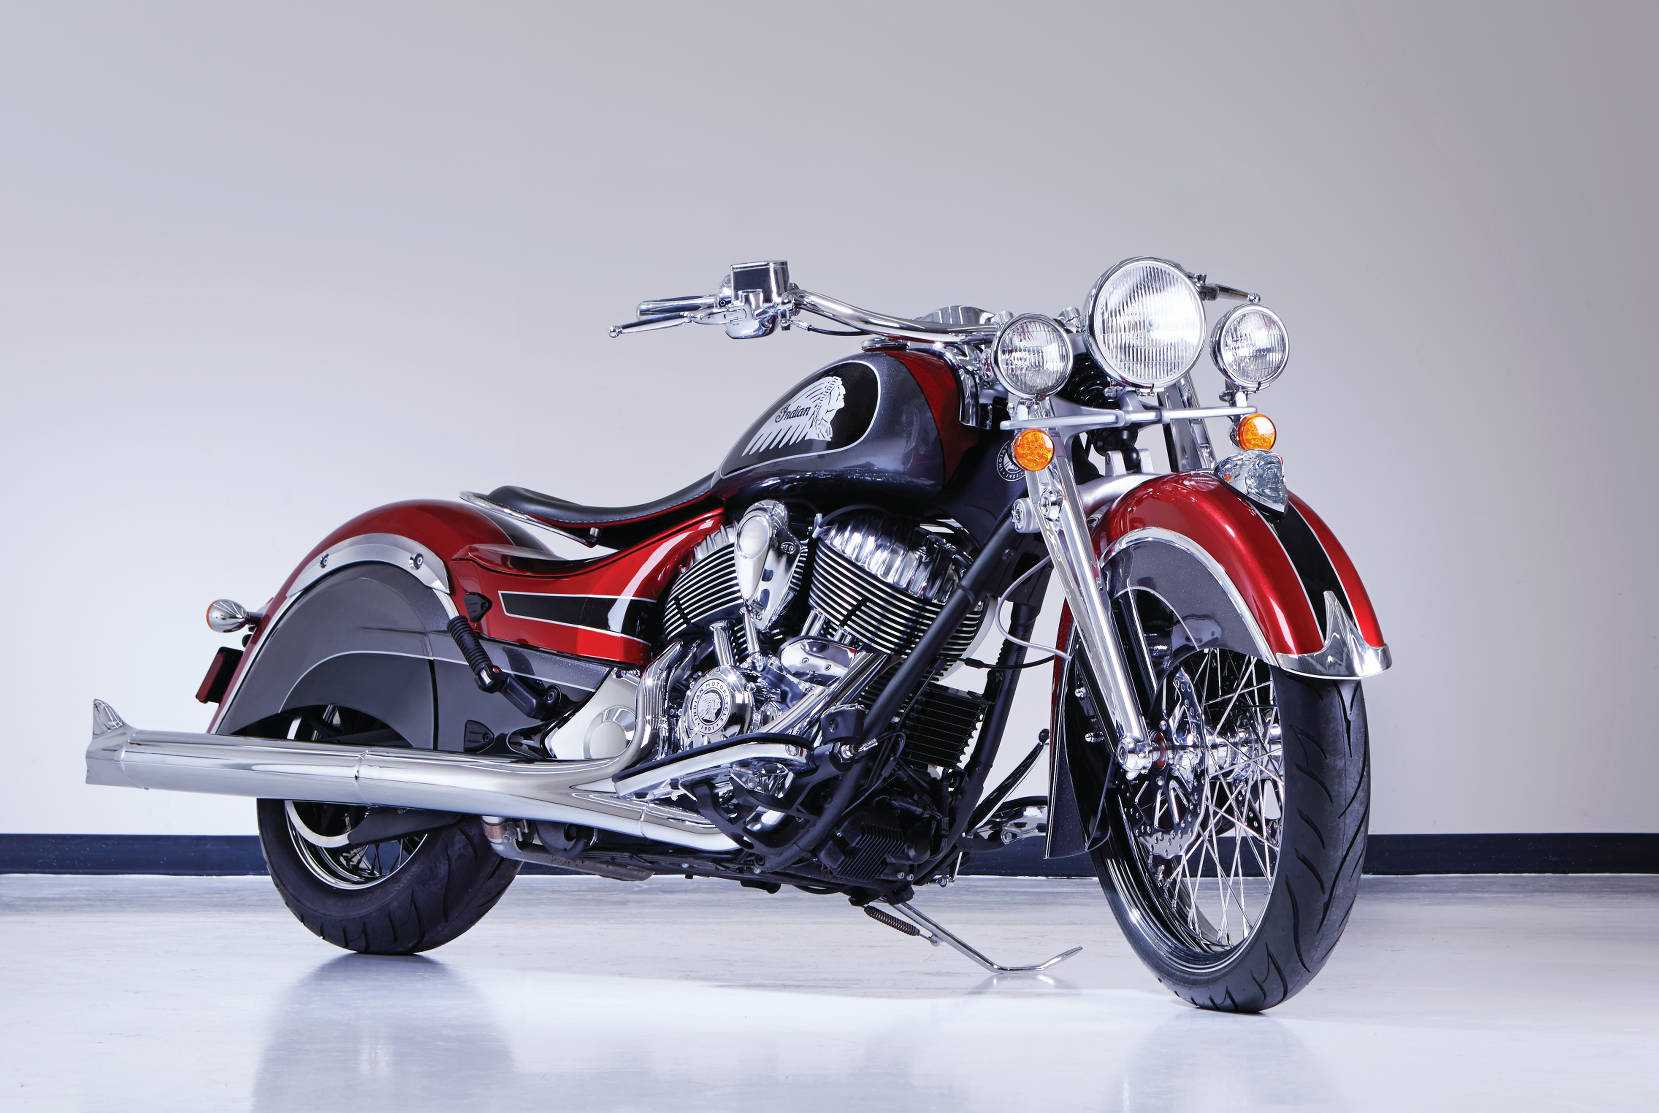 Indian Big Chief Custom Meets New York MotorcycleDaily